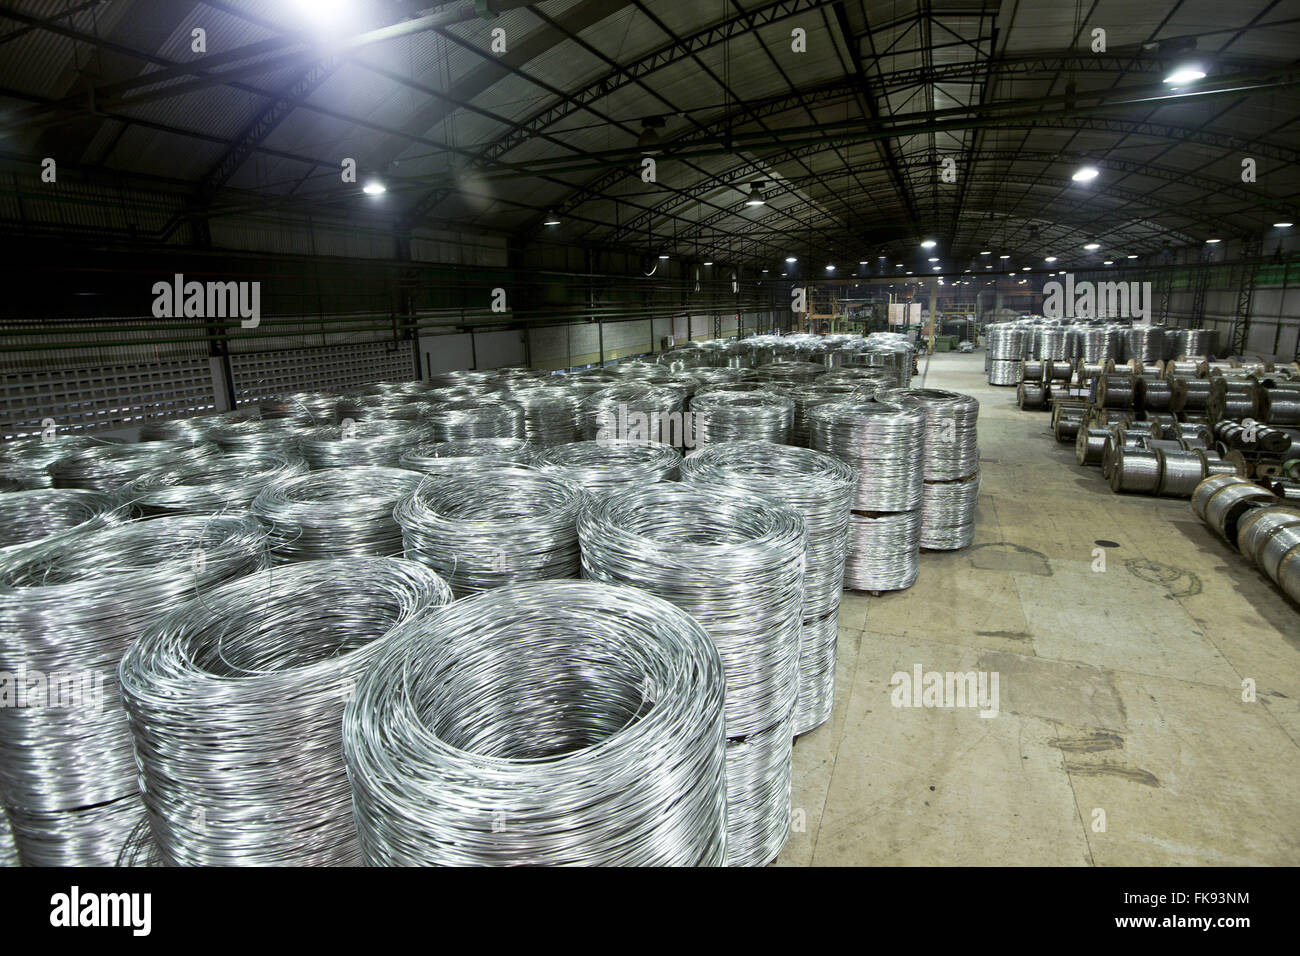 Rollers aluminum cable ready to be packaged for distribution - Stock Image